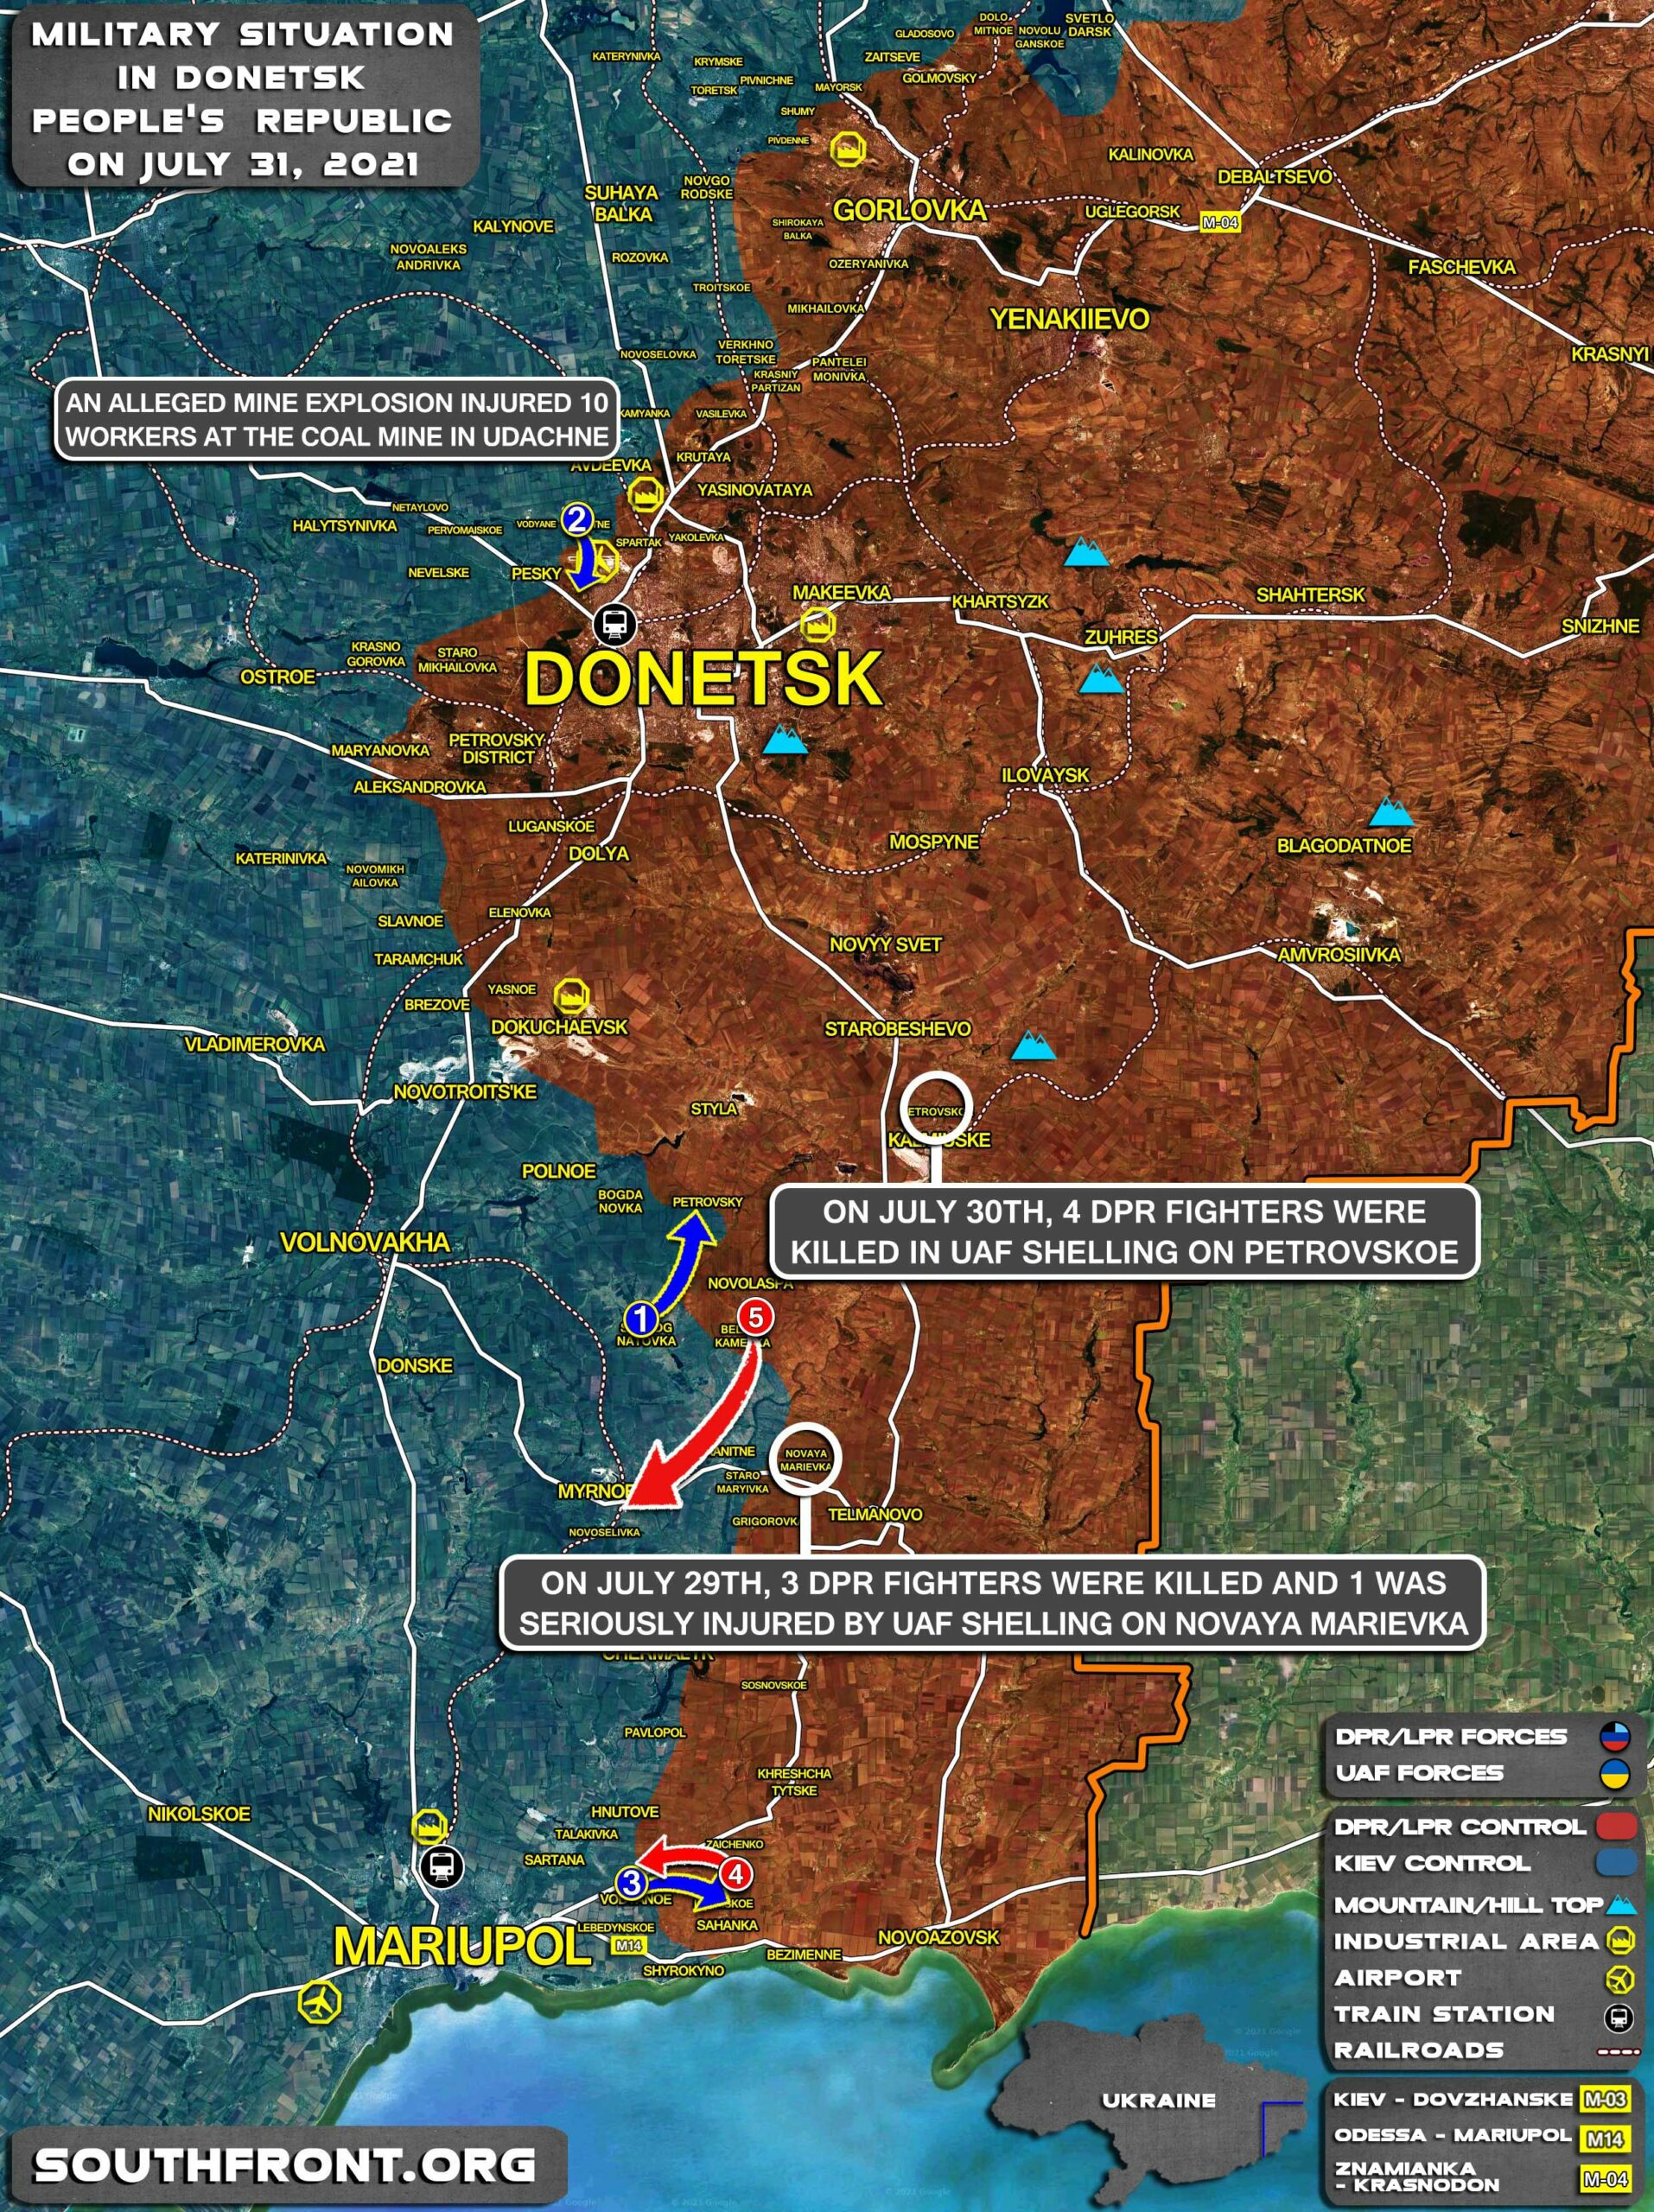 Military Situation In Donetsk People's Republic On July 31, 2021 (Map Update)